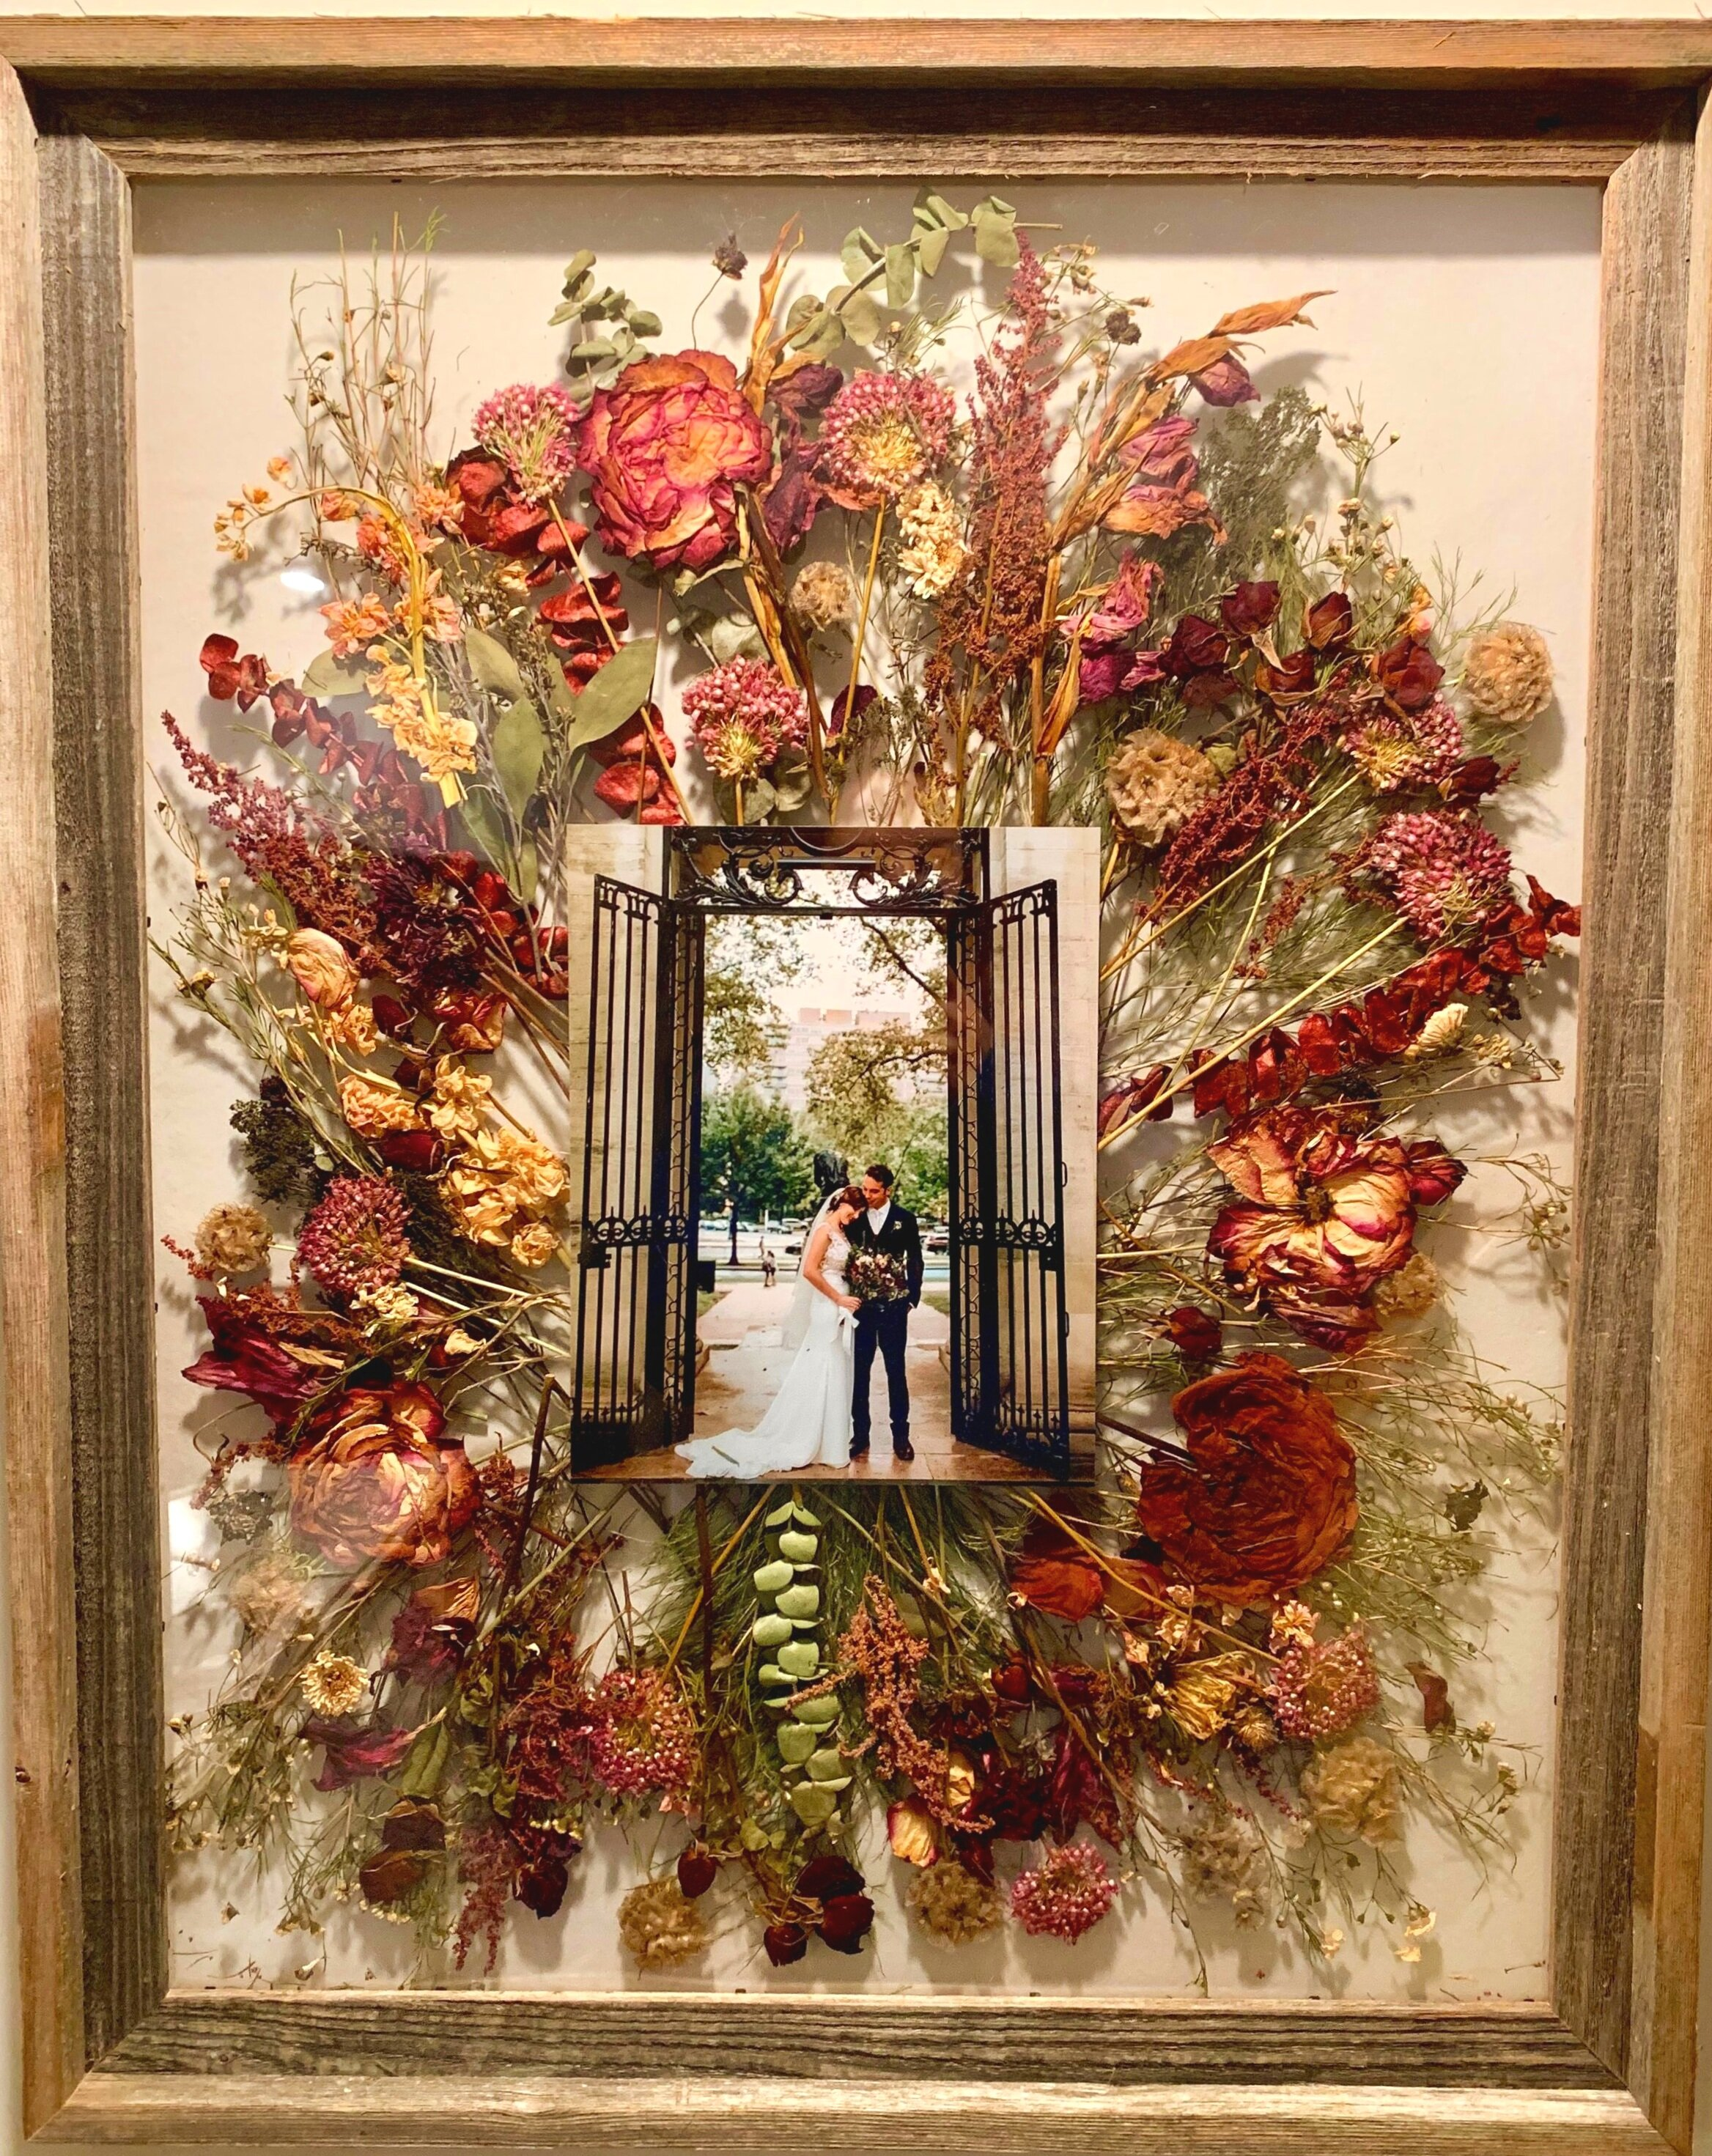 """Pressed bouquet from wedding. 24""""x 28"""" reclaimed barn wood frame with 8 x 10 print of bride and groom on the wedding day. Brides can deliver bouquets, invitations, photos, swatches of dress fabric, etc to be preserved in a frame or hanging shadowbox. See  Contact Page  to inquire about preserving flowers from weddings, proms, recitals, engagements, funerals, etc."""